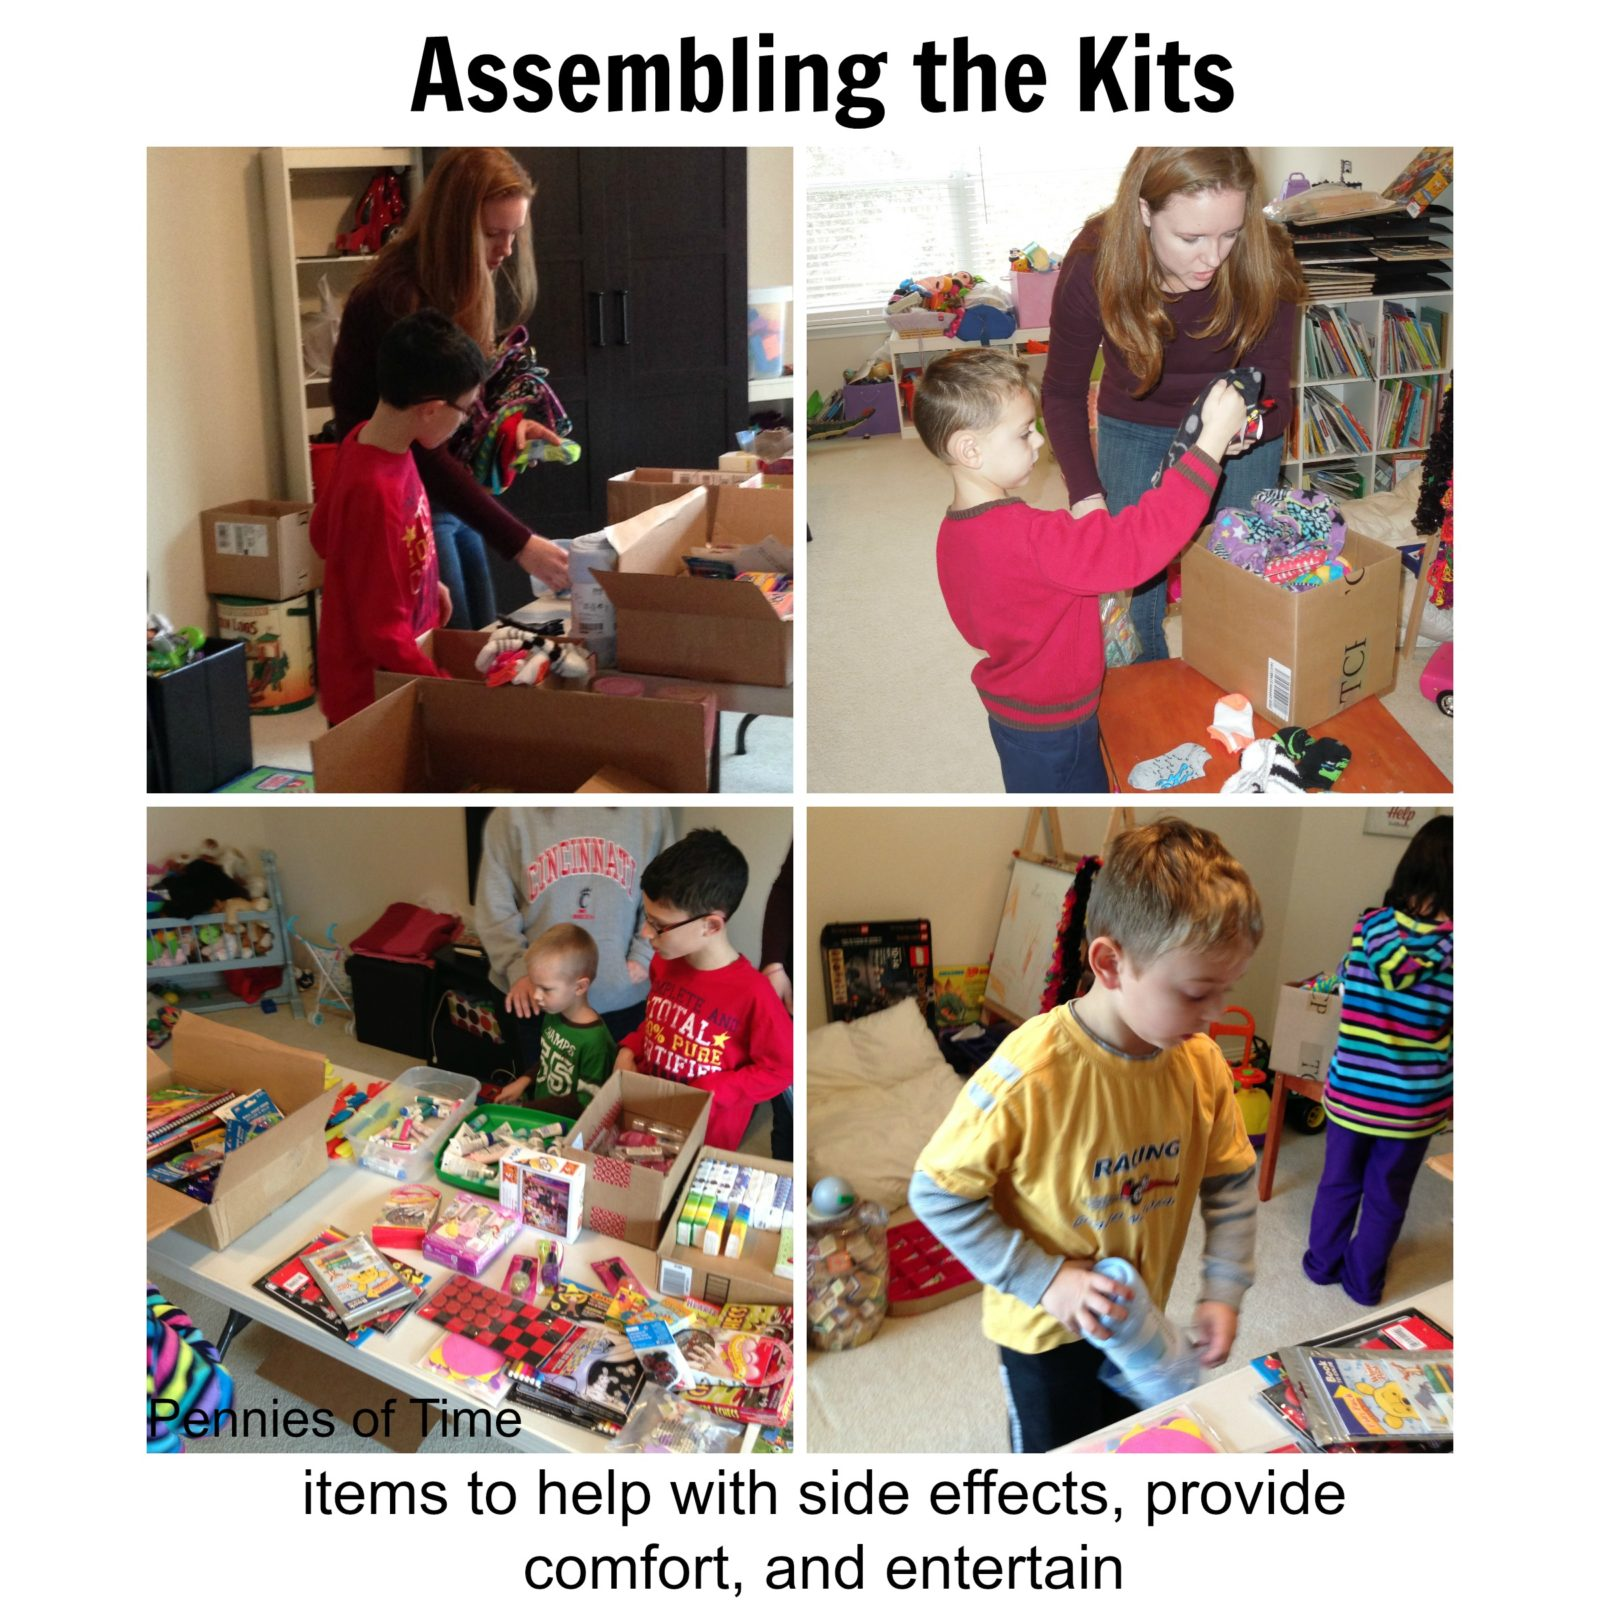 Kids put together chemo care kit for kids.